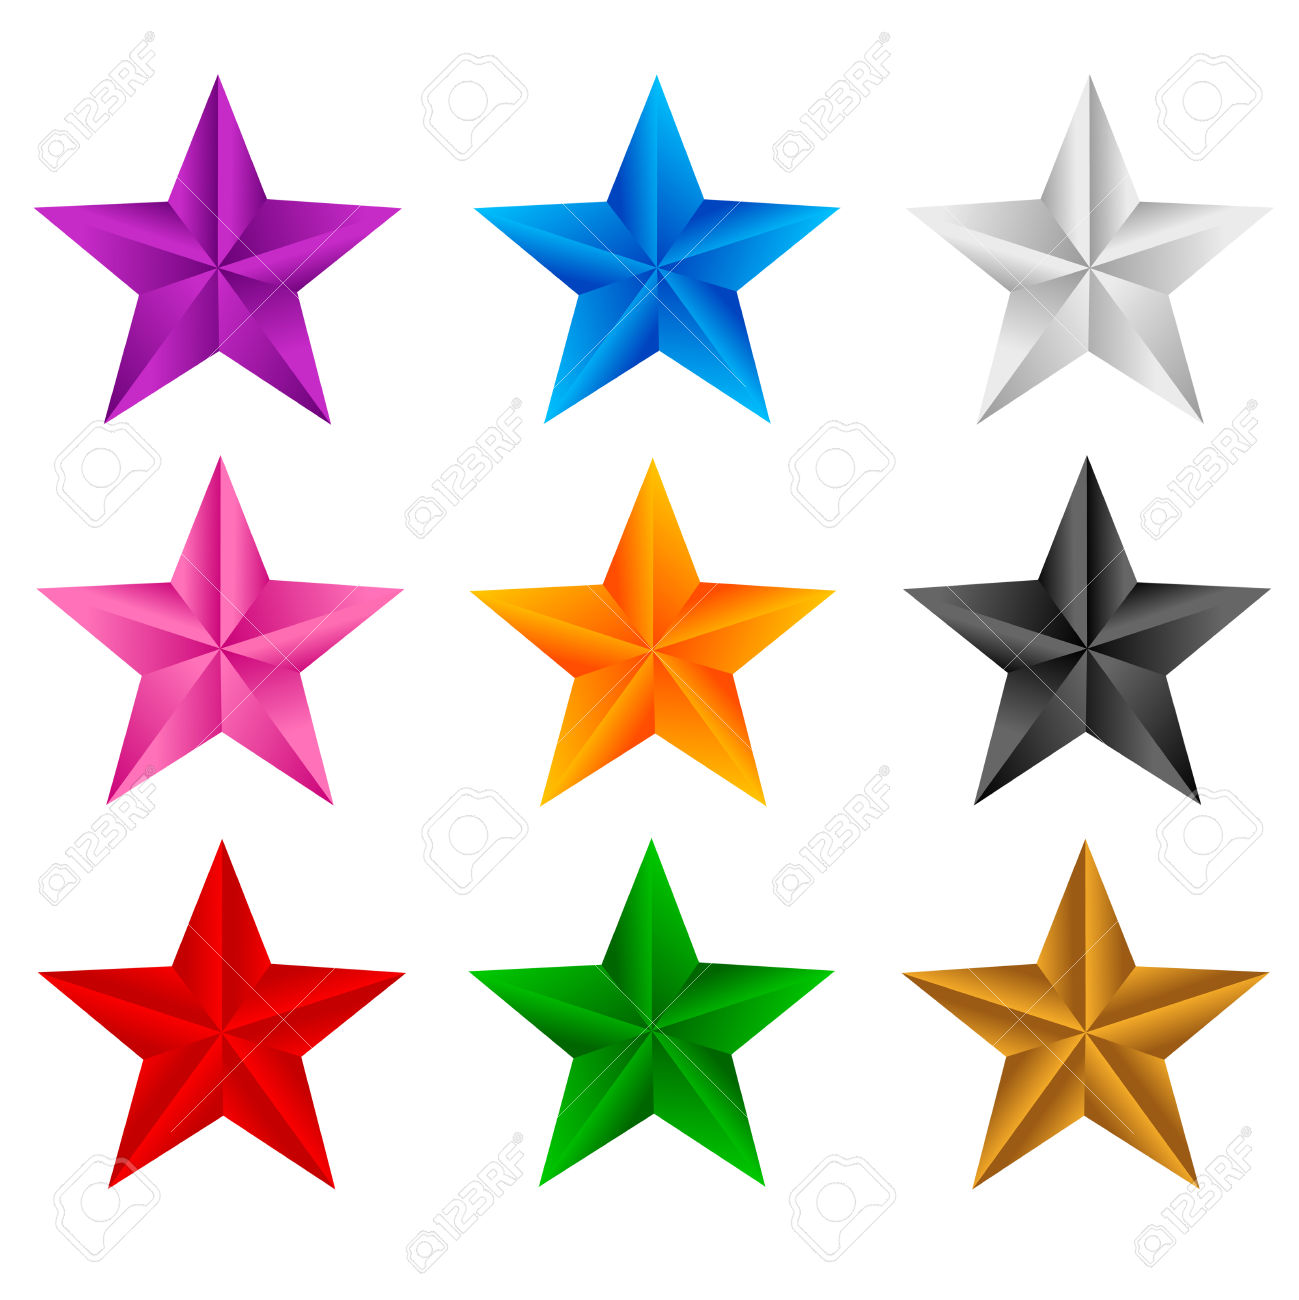 1299x1300 Stars Clipart Colorful Star